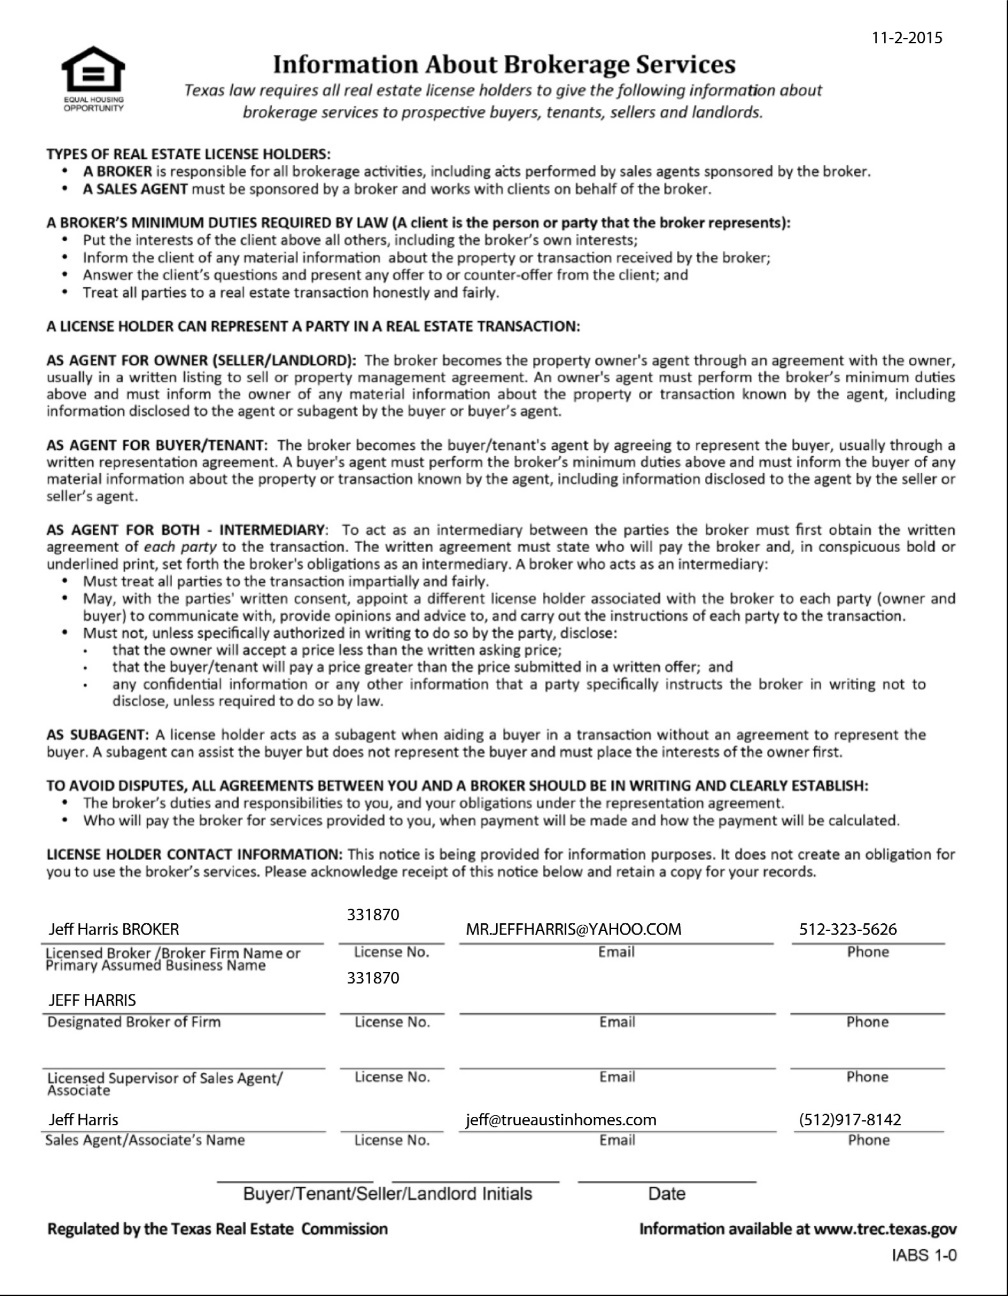 Texas Real Estate (TREC) Information About Brokerage Services Form